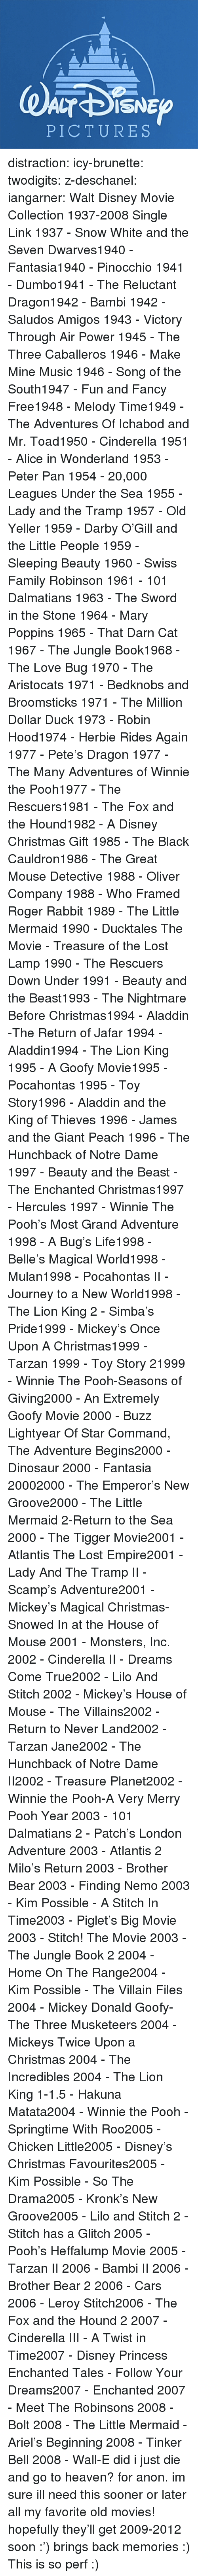 hunchback: PICTURES distraction:   icy-brunette:   twodigits:   z-deschanel:   iangarner:   Walt Disney Movie Collection 1937-2008 Single Link      1937 - Snow White and the Seven Dwarves1940 - Fantasia1940 - Pinocchio 1941 - Dumbo1941 - The Reluctant Dragon1942 - Bambi 1942 - Saludos Amigos 1943 - Victory Through Air Power 1945 - The Three Caballeros 1946 - Make Mine Music 1946 - Song of the South1947 - Fun and Fancy Free1948 - Melody Time1949 - The Adventures Of Ichabod and Mr. Toad1950 - Cinderella 1951 - Alice in Wonderland 1953 - Peter Pan 1954 - 20,000 Leagues Under the Sea 1955 - Lady and the Tramp 1957 - Old Yeller 1959 - Darby O'Gill and the Little People 1959 - Sleeping Beauty 1960 - Swiss Family Robinson 1961 - 101 Dalmatians 1963 - The Sword in the Stone 1964 - Mary Poppins 1965 - That Darn Cat 1967 - The Jungle Book1968 - The Love Bug 1970 - The Aristocats 1971 - Bedknobs and Broomsticks 1971 - The Million Dollar Duck 1973 - Robin Hood1974 - Herbie Rides Again 1977 - Pete's Dragon 1977 - The Many Adventures of Winnie the Pooh1977 - The Rescuers1981 - The Fox and the Hound1982 - A Disney Christmas Gift 1985 - The Black Cauldron1986 - The Great Mouse Detective 1988 - Oliver  Company 1988 - Who Framed Roger Rabbit 1989 - The Little Mermaid 1990 - Ducktales The Movie - Treasure of the Lost Lamp 1990 - The Rescuers Down Under 1991 - Beauty and the Beast1993 - The Nightmare Before Christmas1994 - Aladdin -The Return of Jafar 1994 - Aladdin1994 - The Lion King 1995 - A Goofy Movie1995 - Pocahontas 1995 - Toy Story1996 - Aladdin and the King of Thieves 1996 - James and the Giant Peach 1996 - The Hunchback of Notre Dame 1997 - Beauty and the Beast - The Enchanted Christmas1997 - Hercules 1997 - Winnie The Pooh's Most Grand Adventure 1998 - A Bug's Life1998 - Belle's Magical World1998 - Mulan1998 - Pocahontas II - Journey to a New World1998 - The Lion King 2 - Simba's Pride1999 - Mickey's Once Upon A Christmas1999 - Tarzan 1999 - Toy Story 21999 - Winnie The Pooh